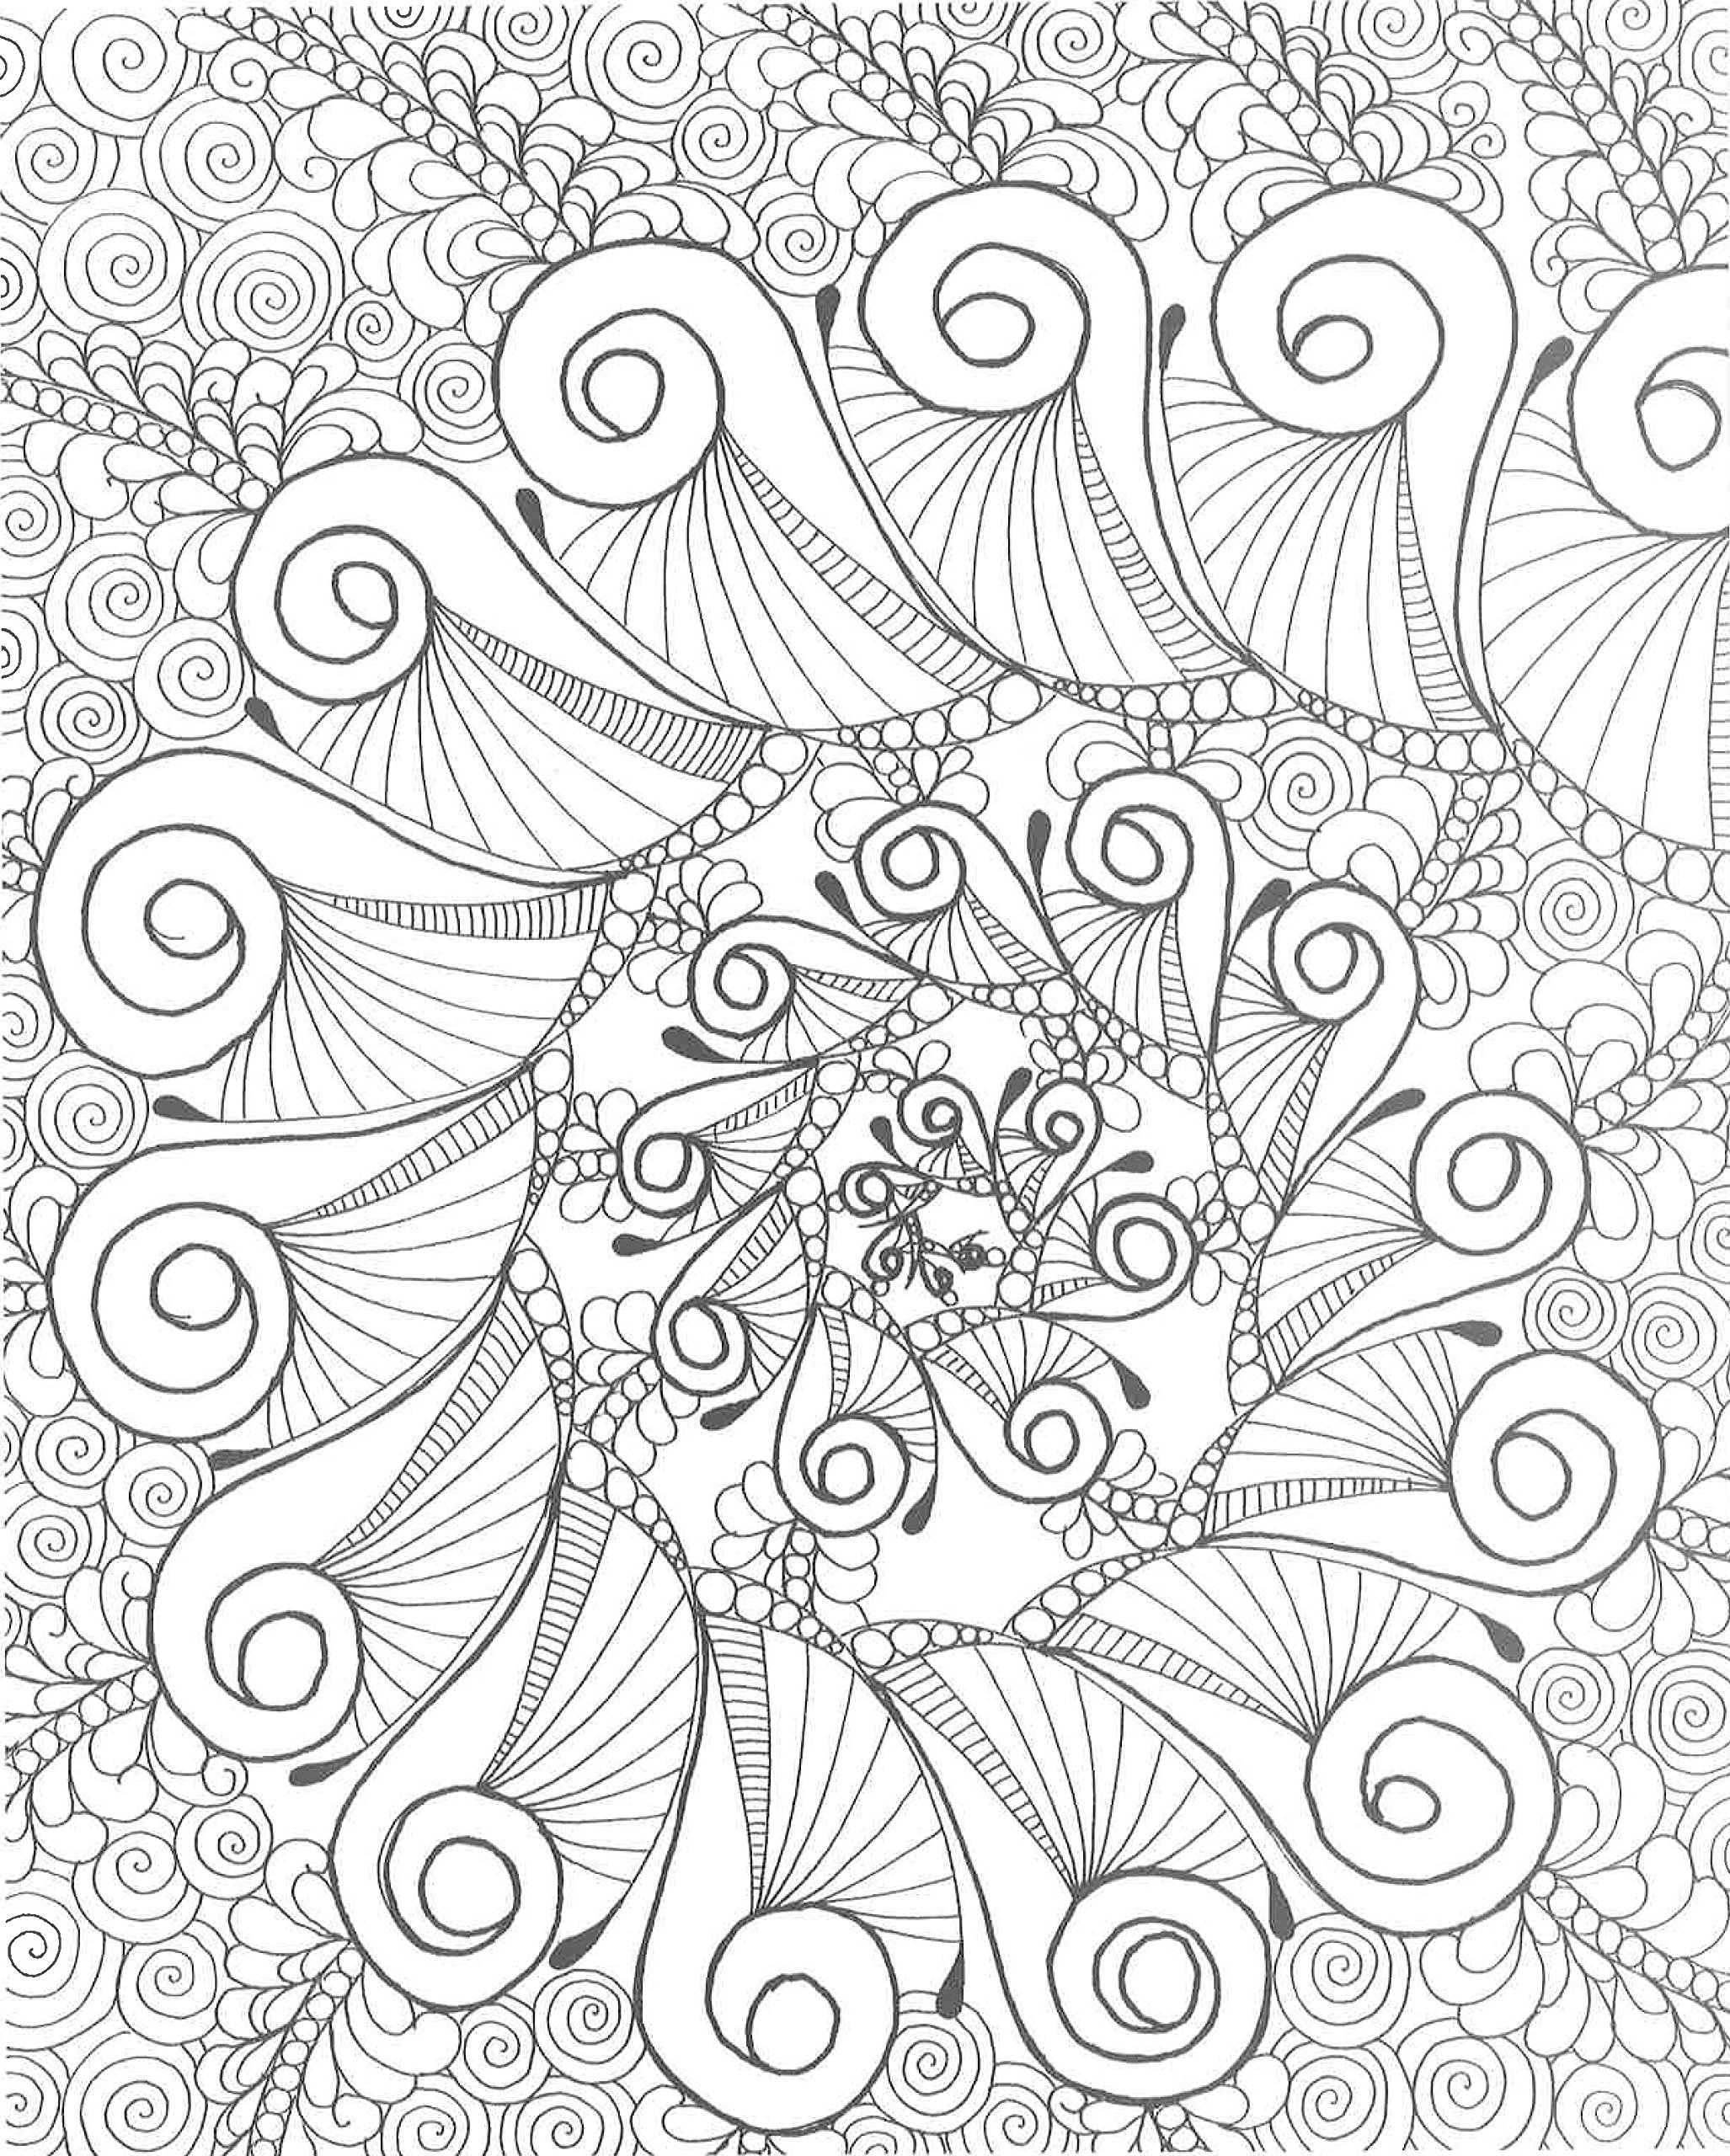 Amazon Zendoodle Coloring Calming Swirls Stress Relieving Designs To Color And Display 9781250086495 Nikolett Corley Books